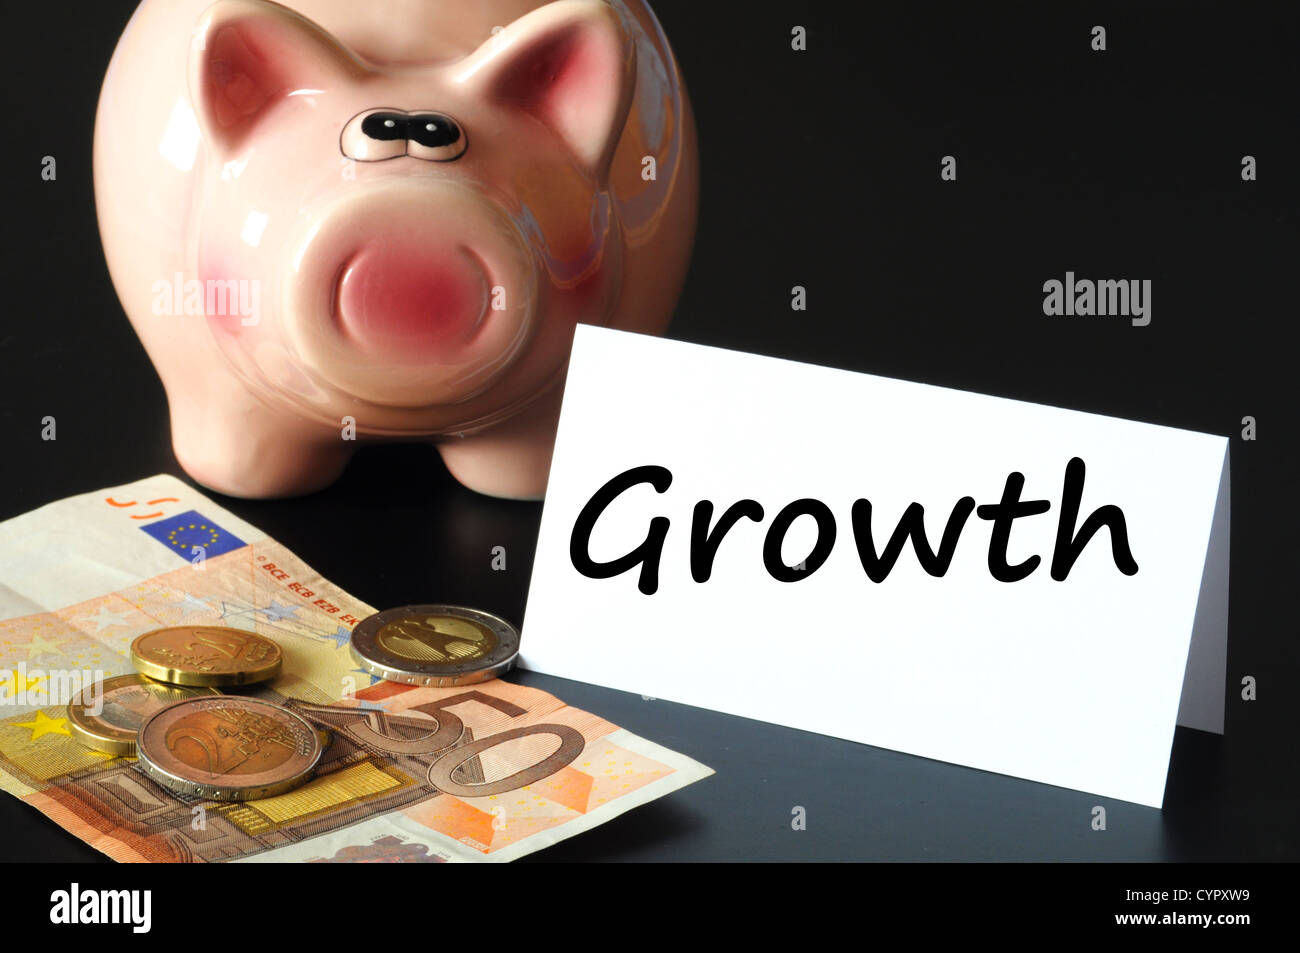 financial or economic growth concept with piggy bank on black background - Stock Image